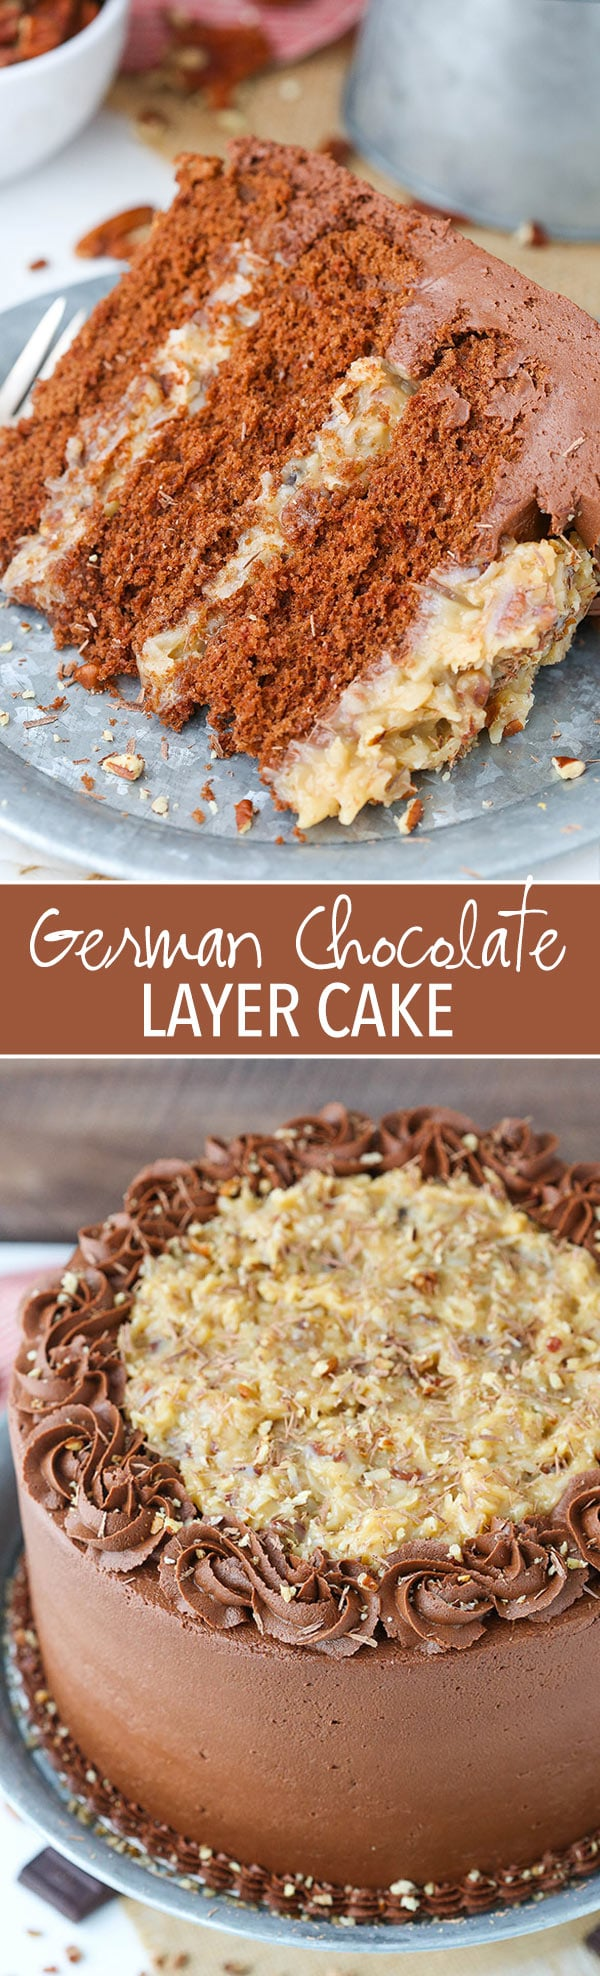 German Chocolate Cake - Life Love and Sugar